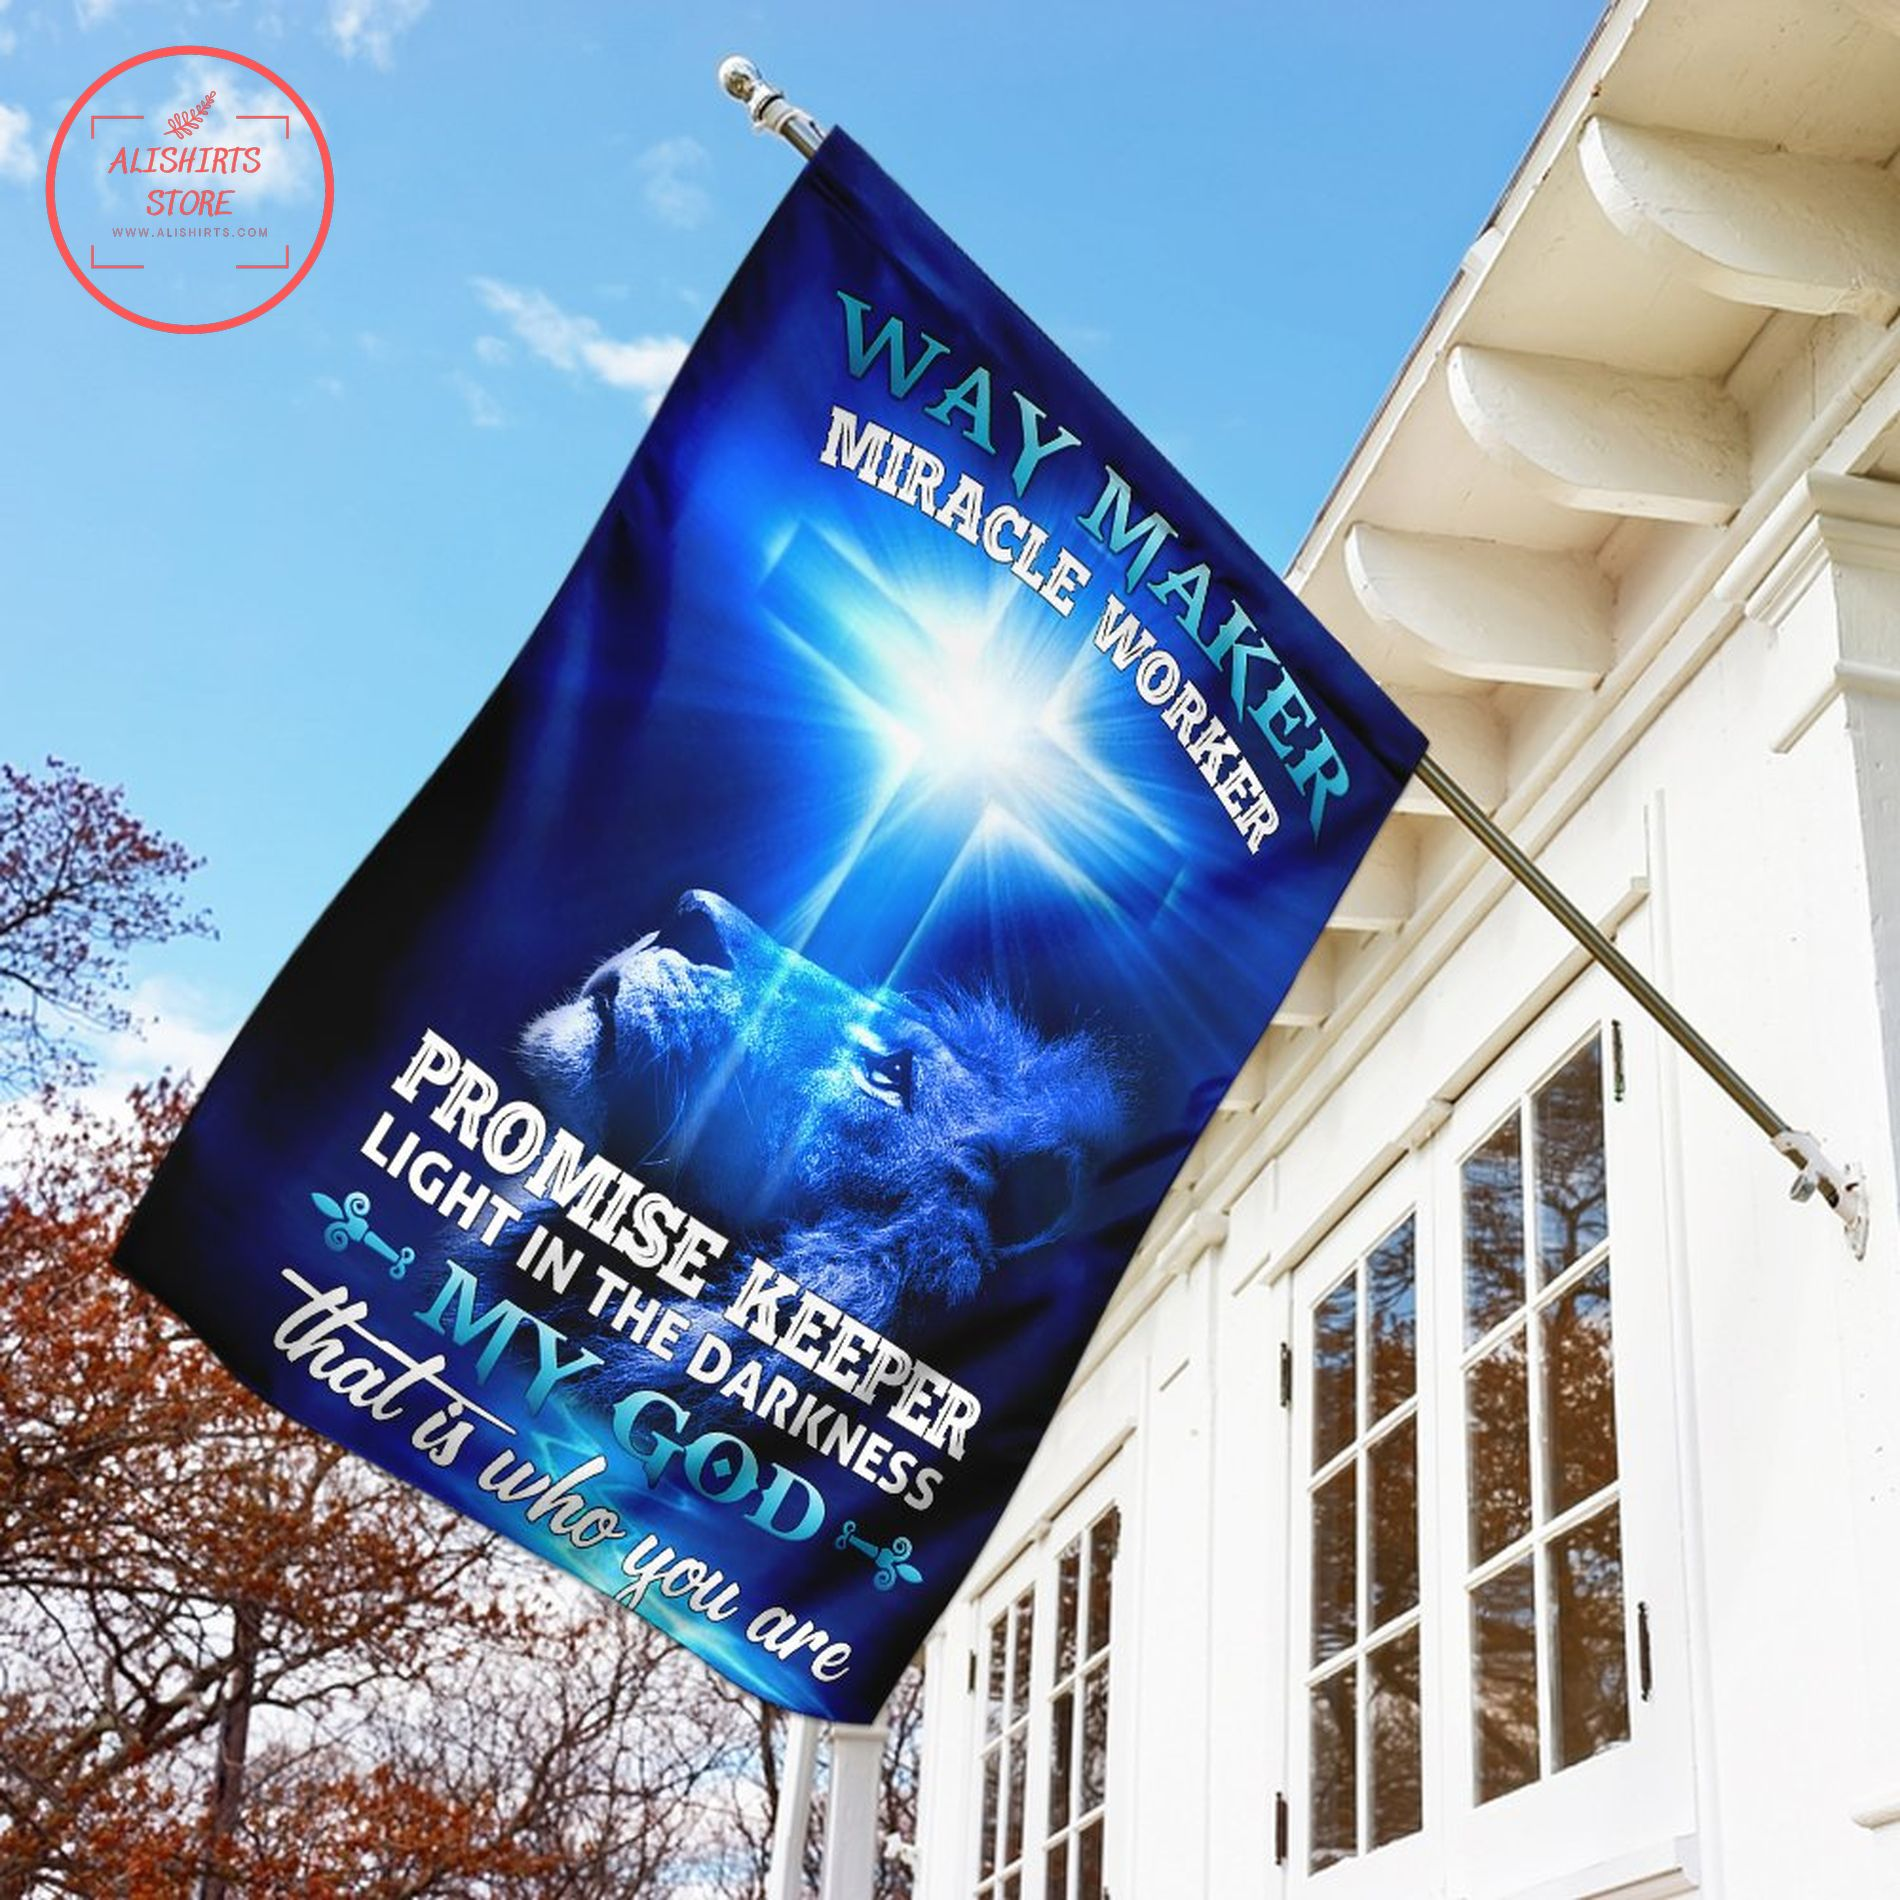 Blue way maker miracle worker promise keeper flag